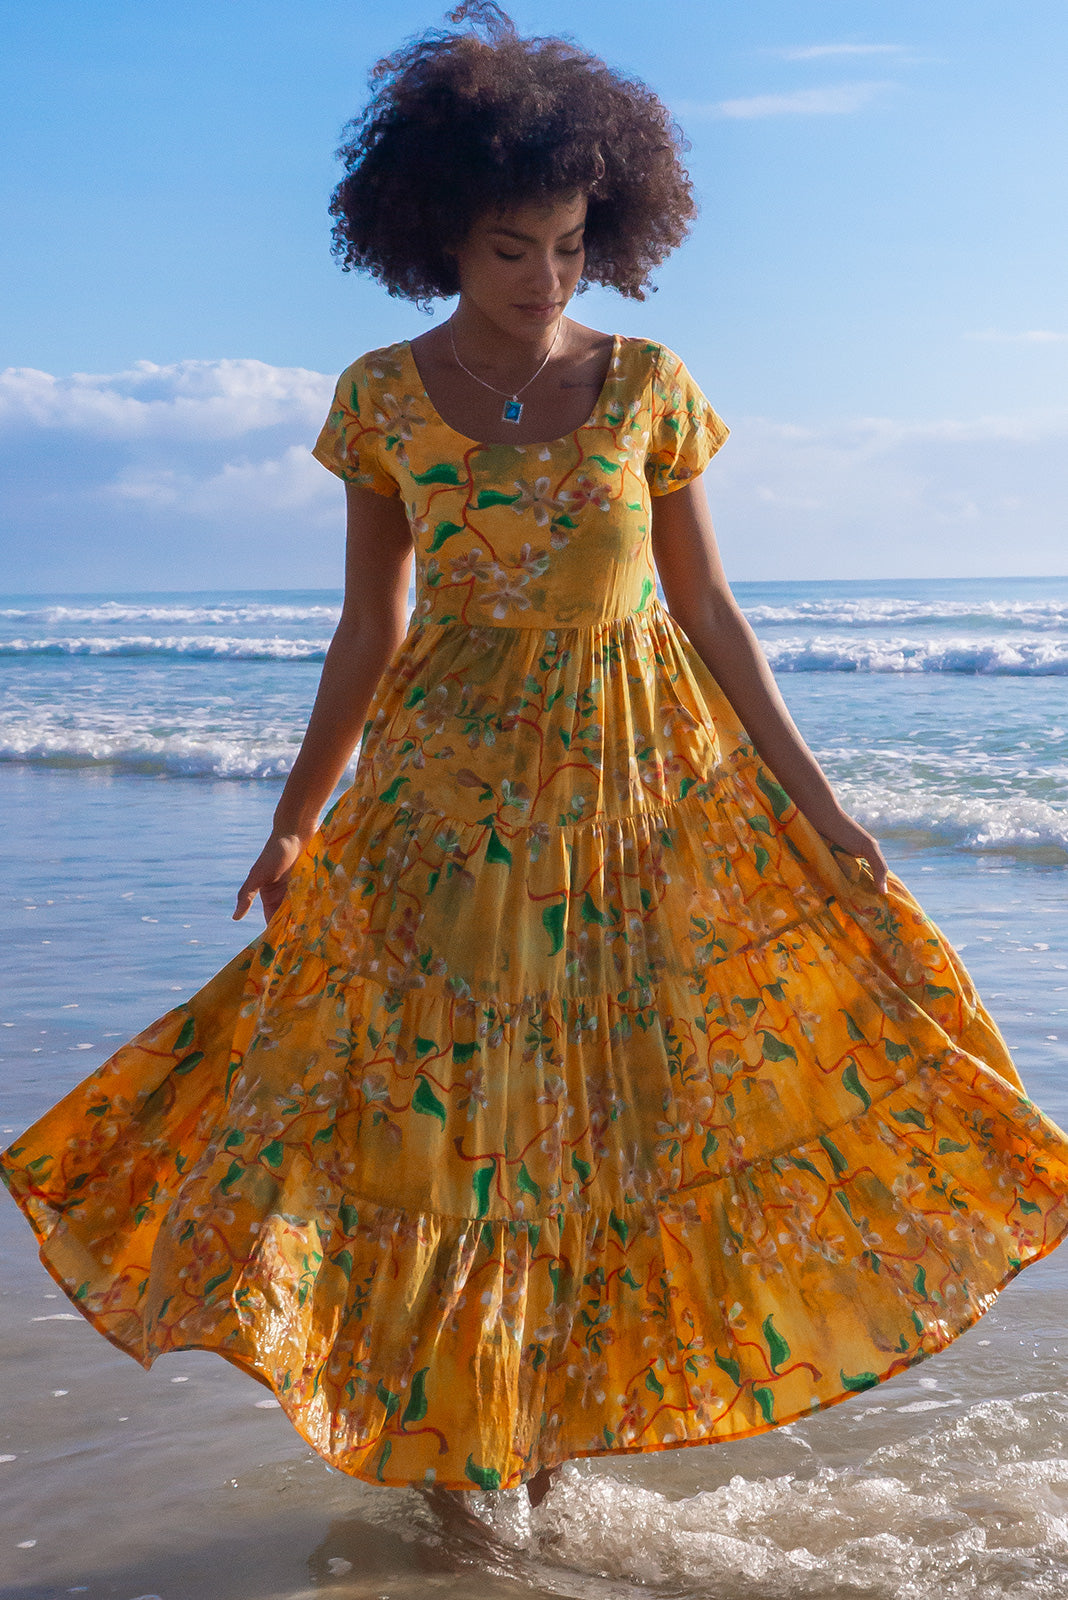 The Lucky Lulu Golden Garden Maxi Dress features scooped neckline, cap sleeves, side pockets, wide tiered skirt and 100% cotton in golden yellow and amber tone base with an abstract floral design and a light wash of moss green.